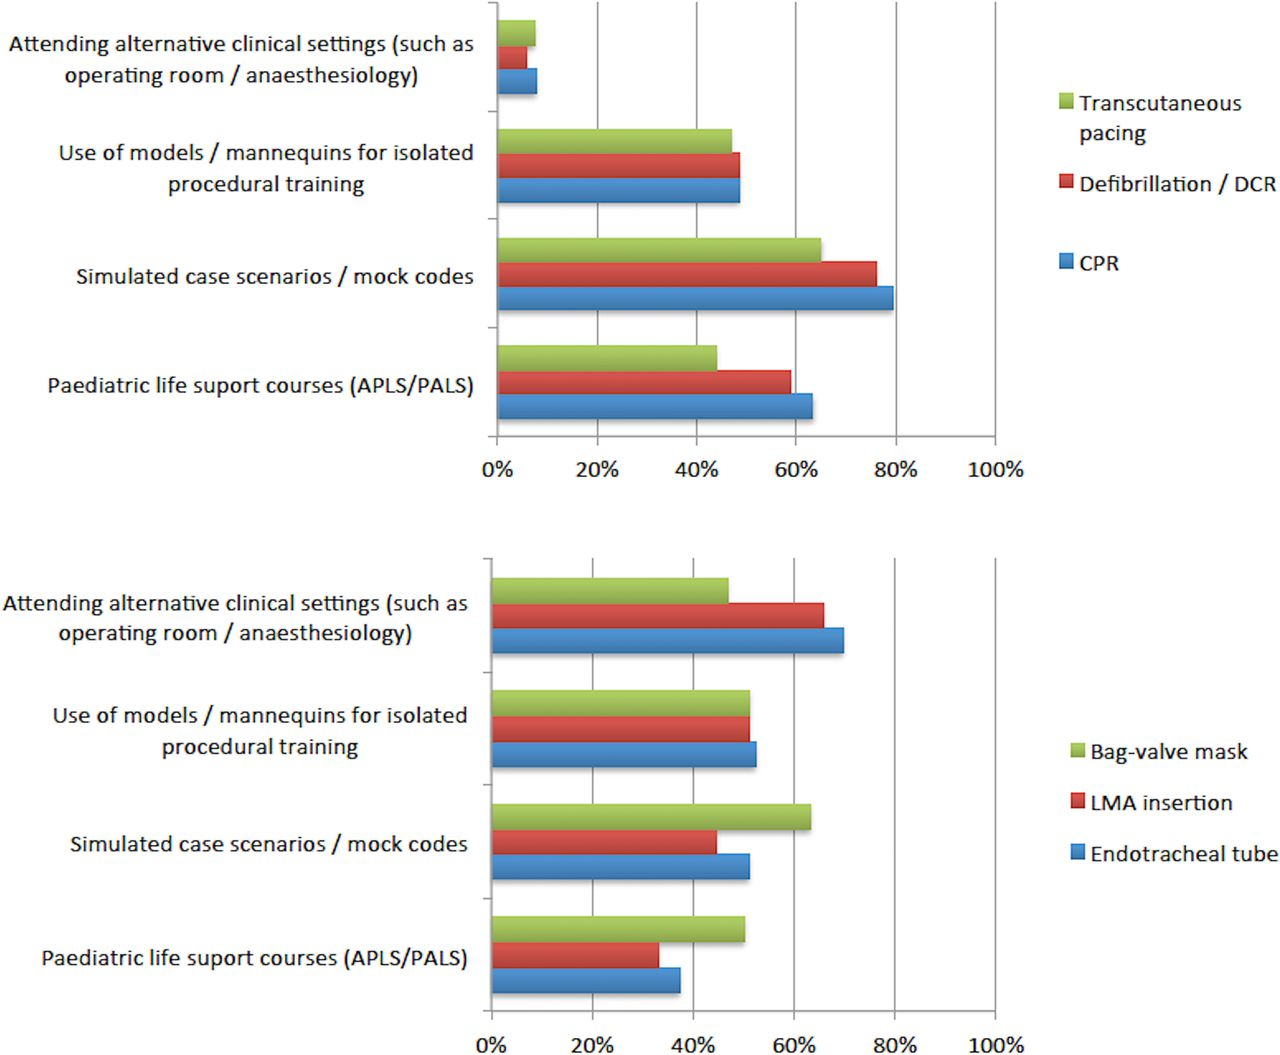 Preferred learning modalities and practice for critical